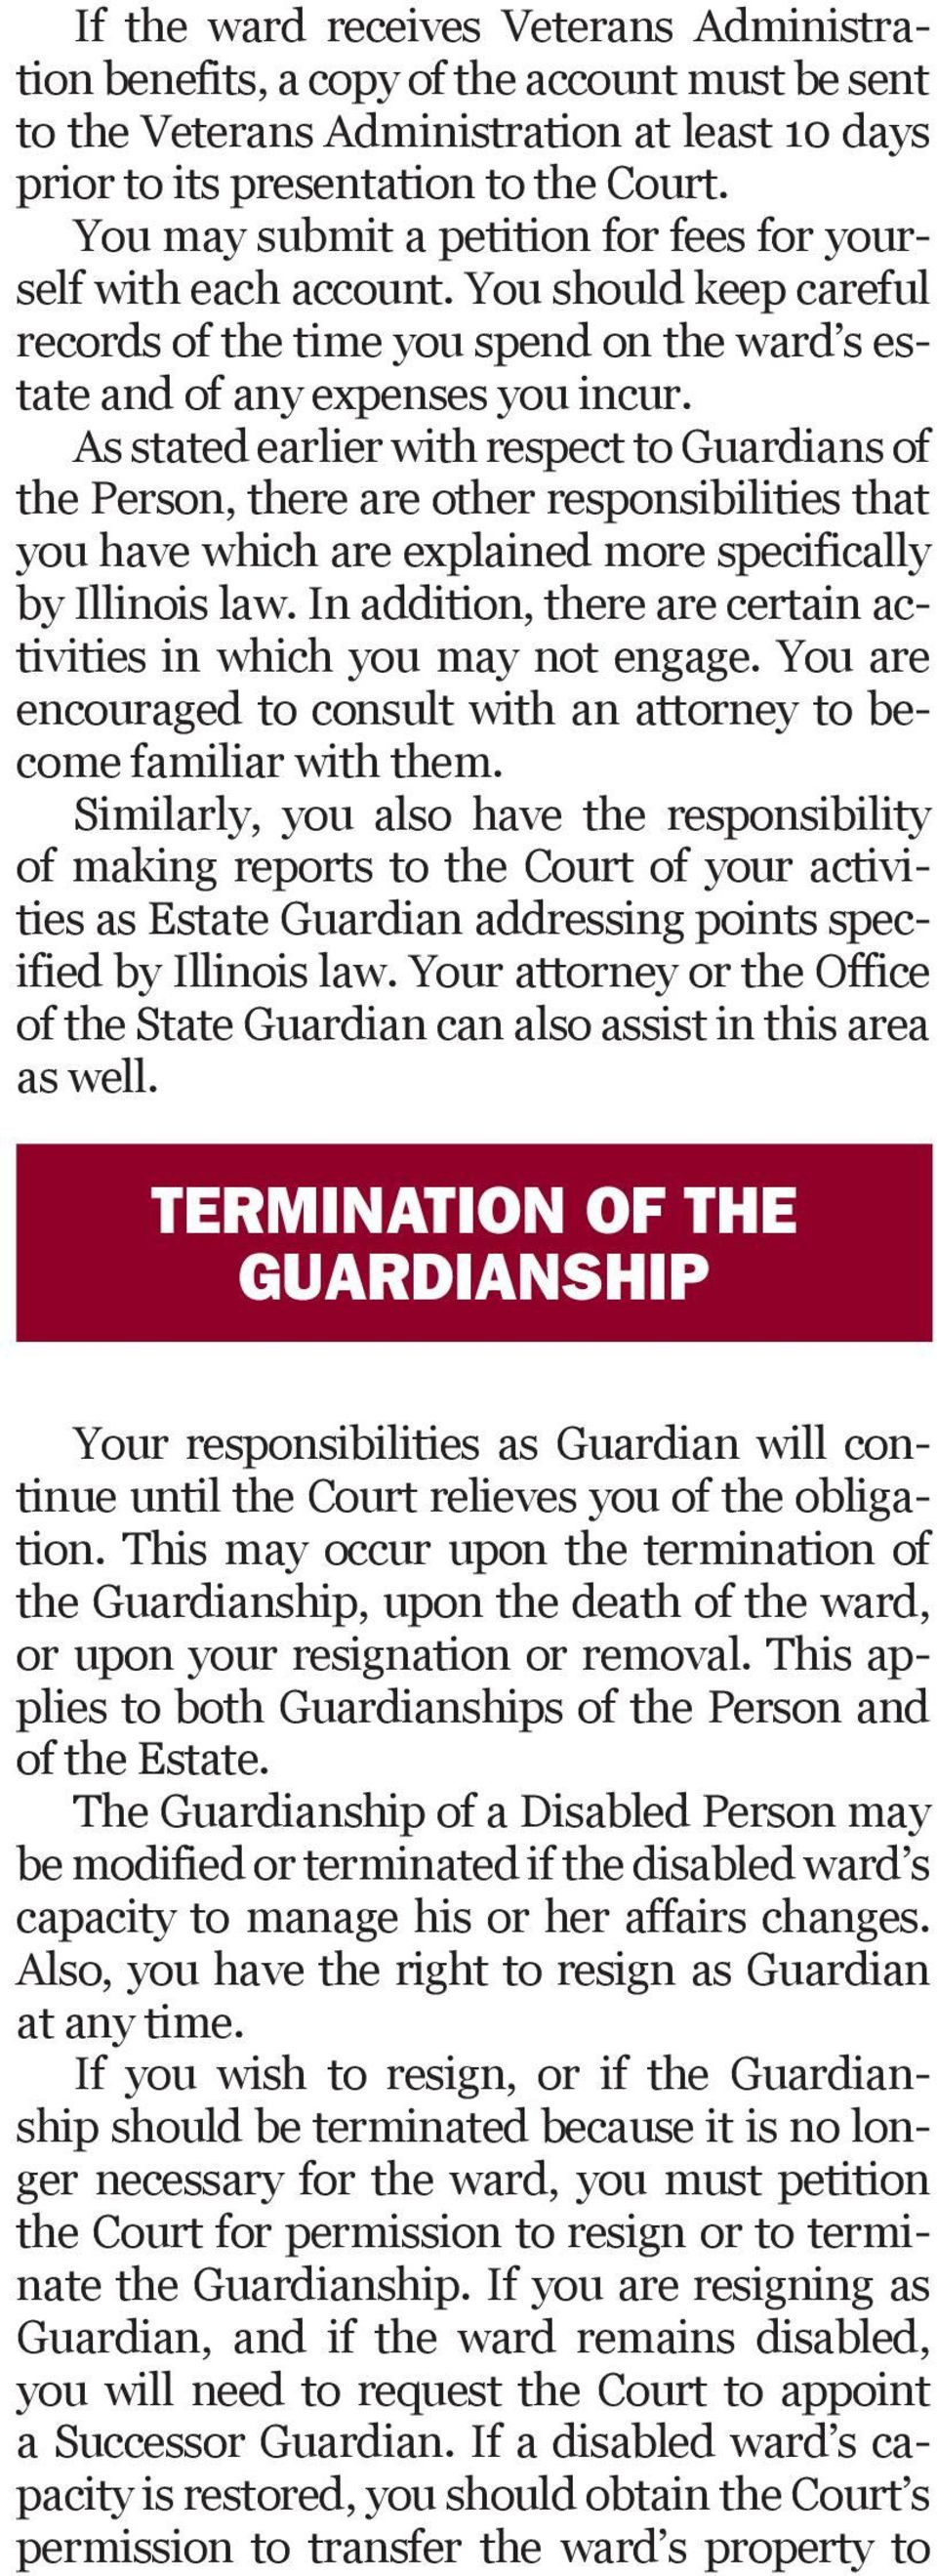 As stated earlier with respect to Guardians of the Person, there are other responsibilities that you have which are explained more specifically by Illinois law.